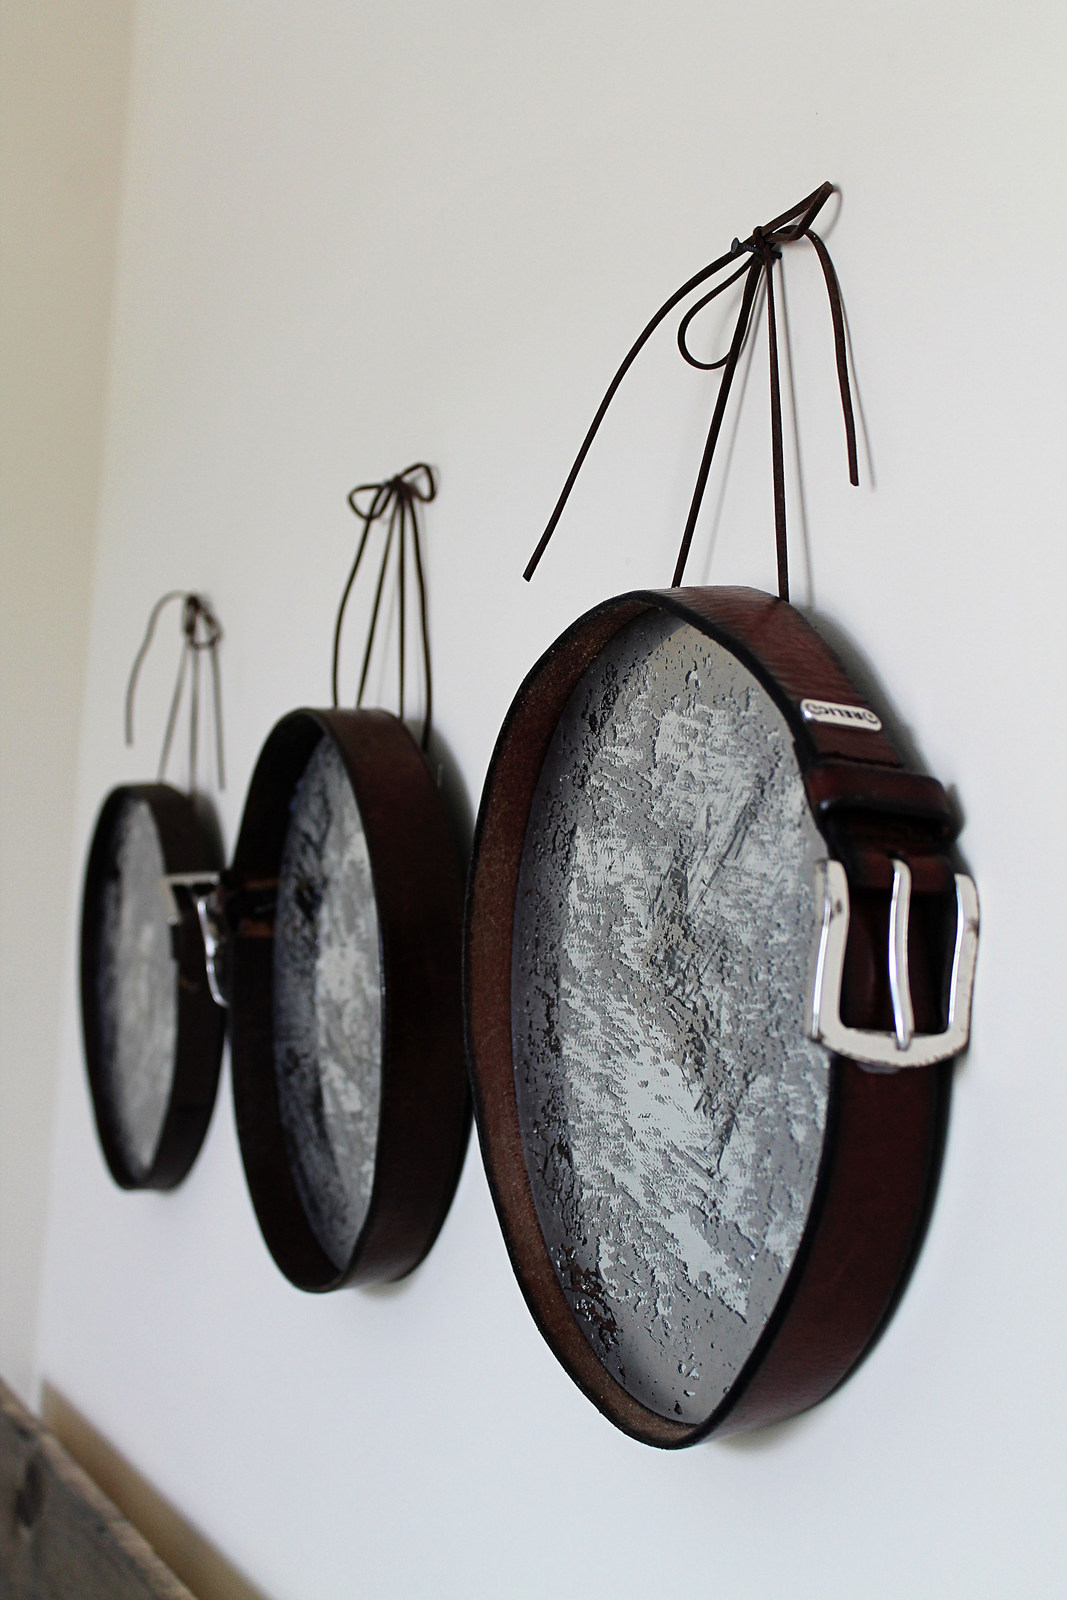 20 Unusual Diy Ideas To Reuse And Recycle Old Belts The